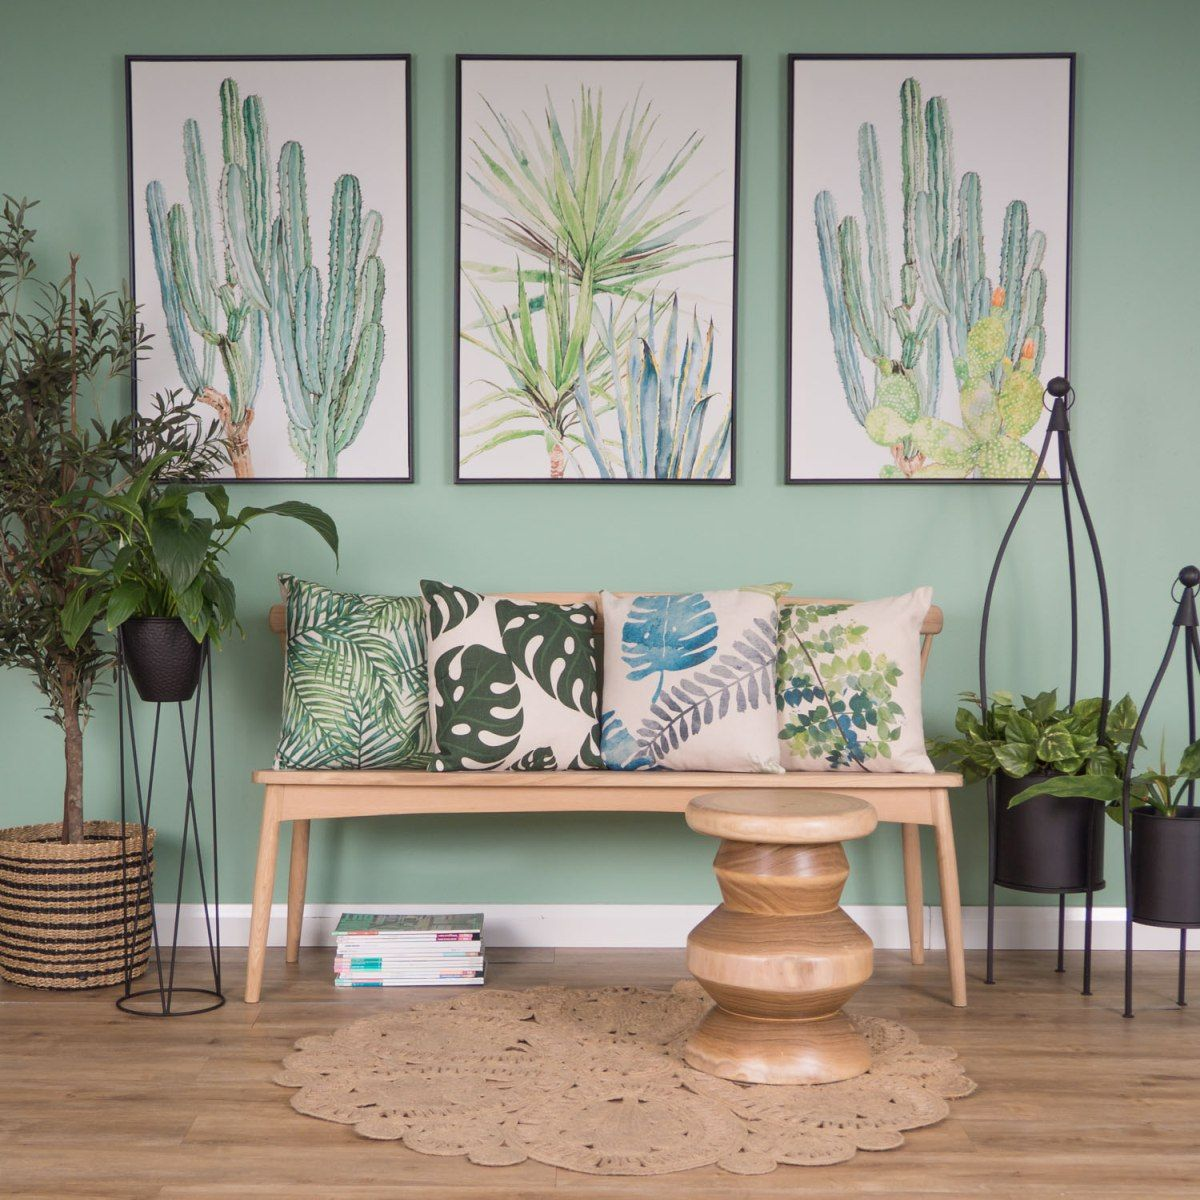 Amazing Looking For Home Decor Online Australia? Earth De Fleur Homewares Are  Constantly Sourcing The Highest Quality Home Decor Sale U0026 Deliver Australia  Wide.